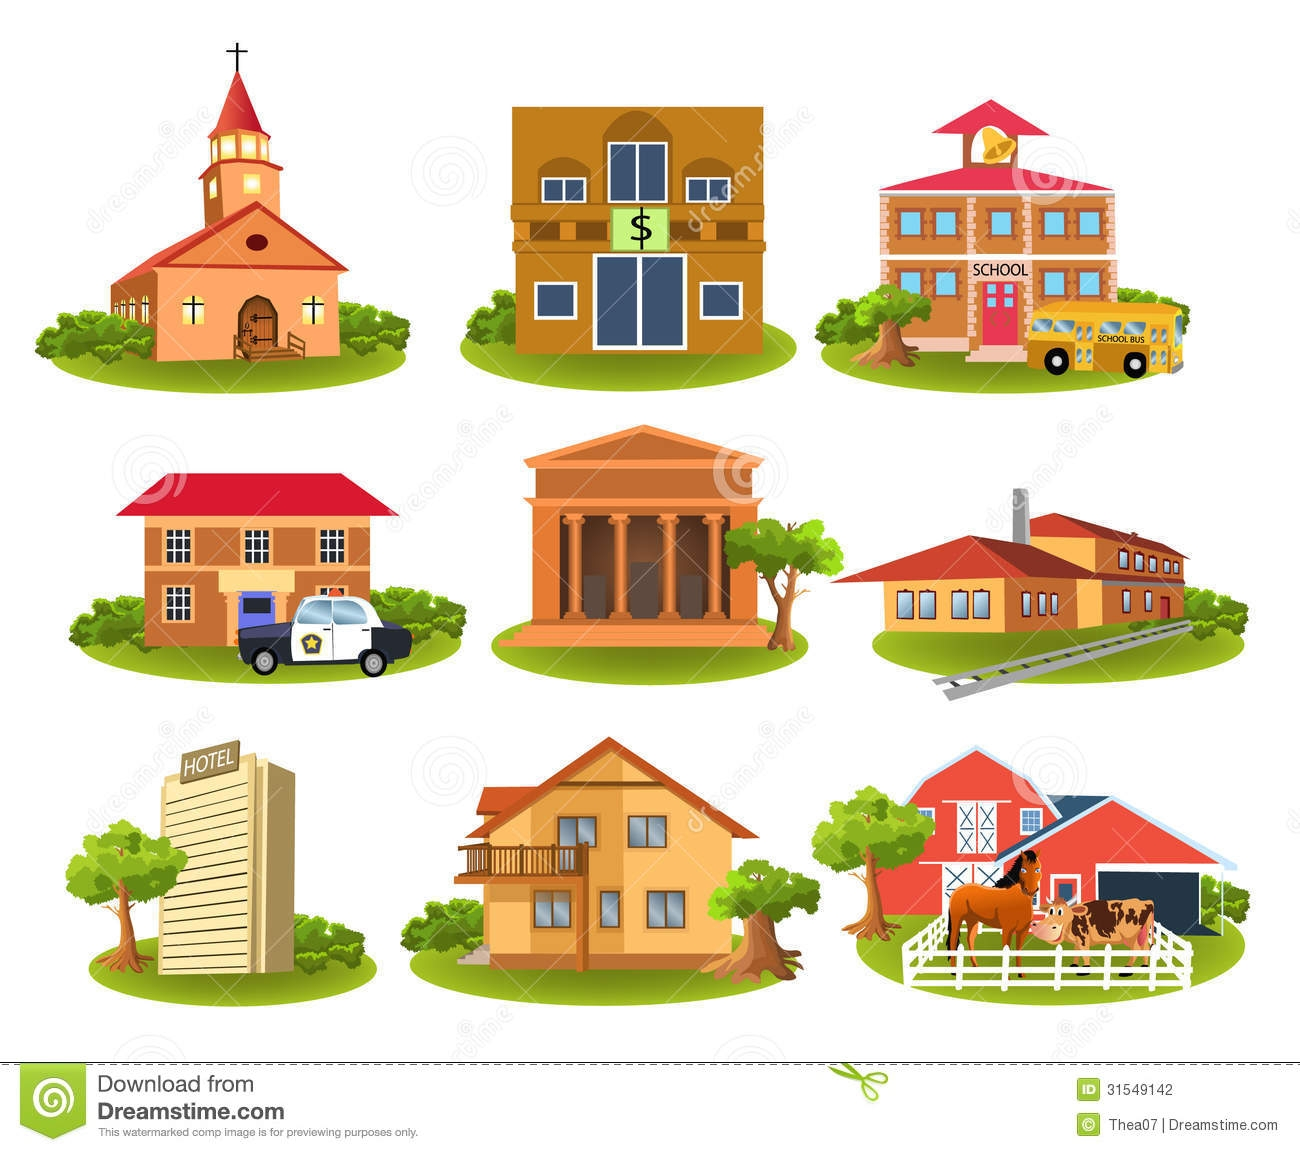 Place clipart on image graphic royalty free Neighborhood clipart neighbourhood place - 137 transparent ... graphic royalty free